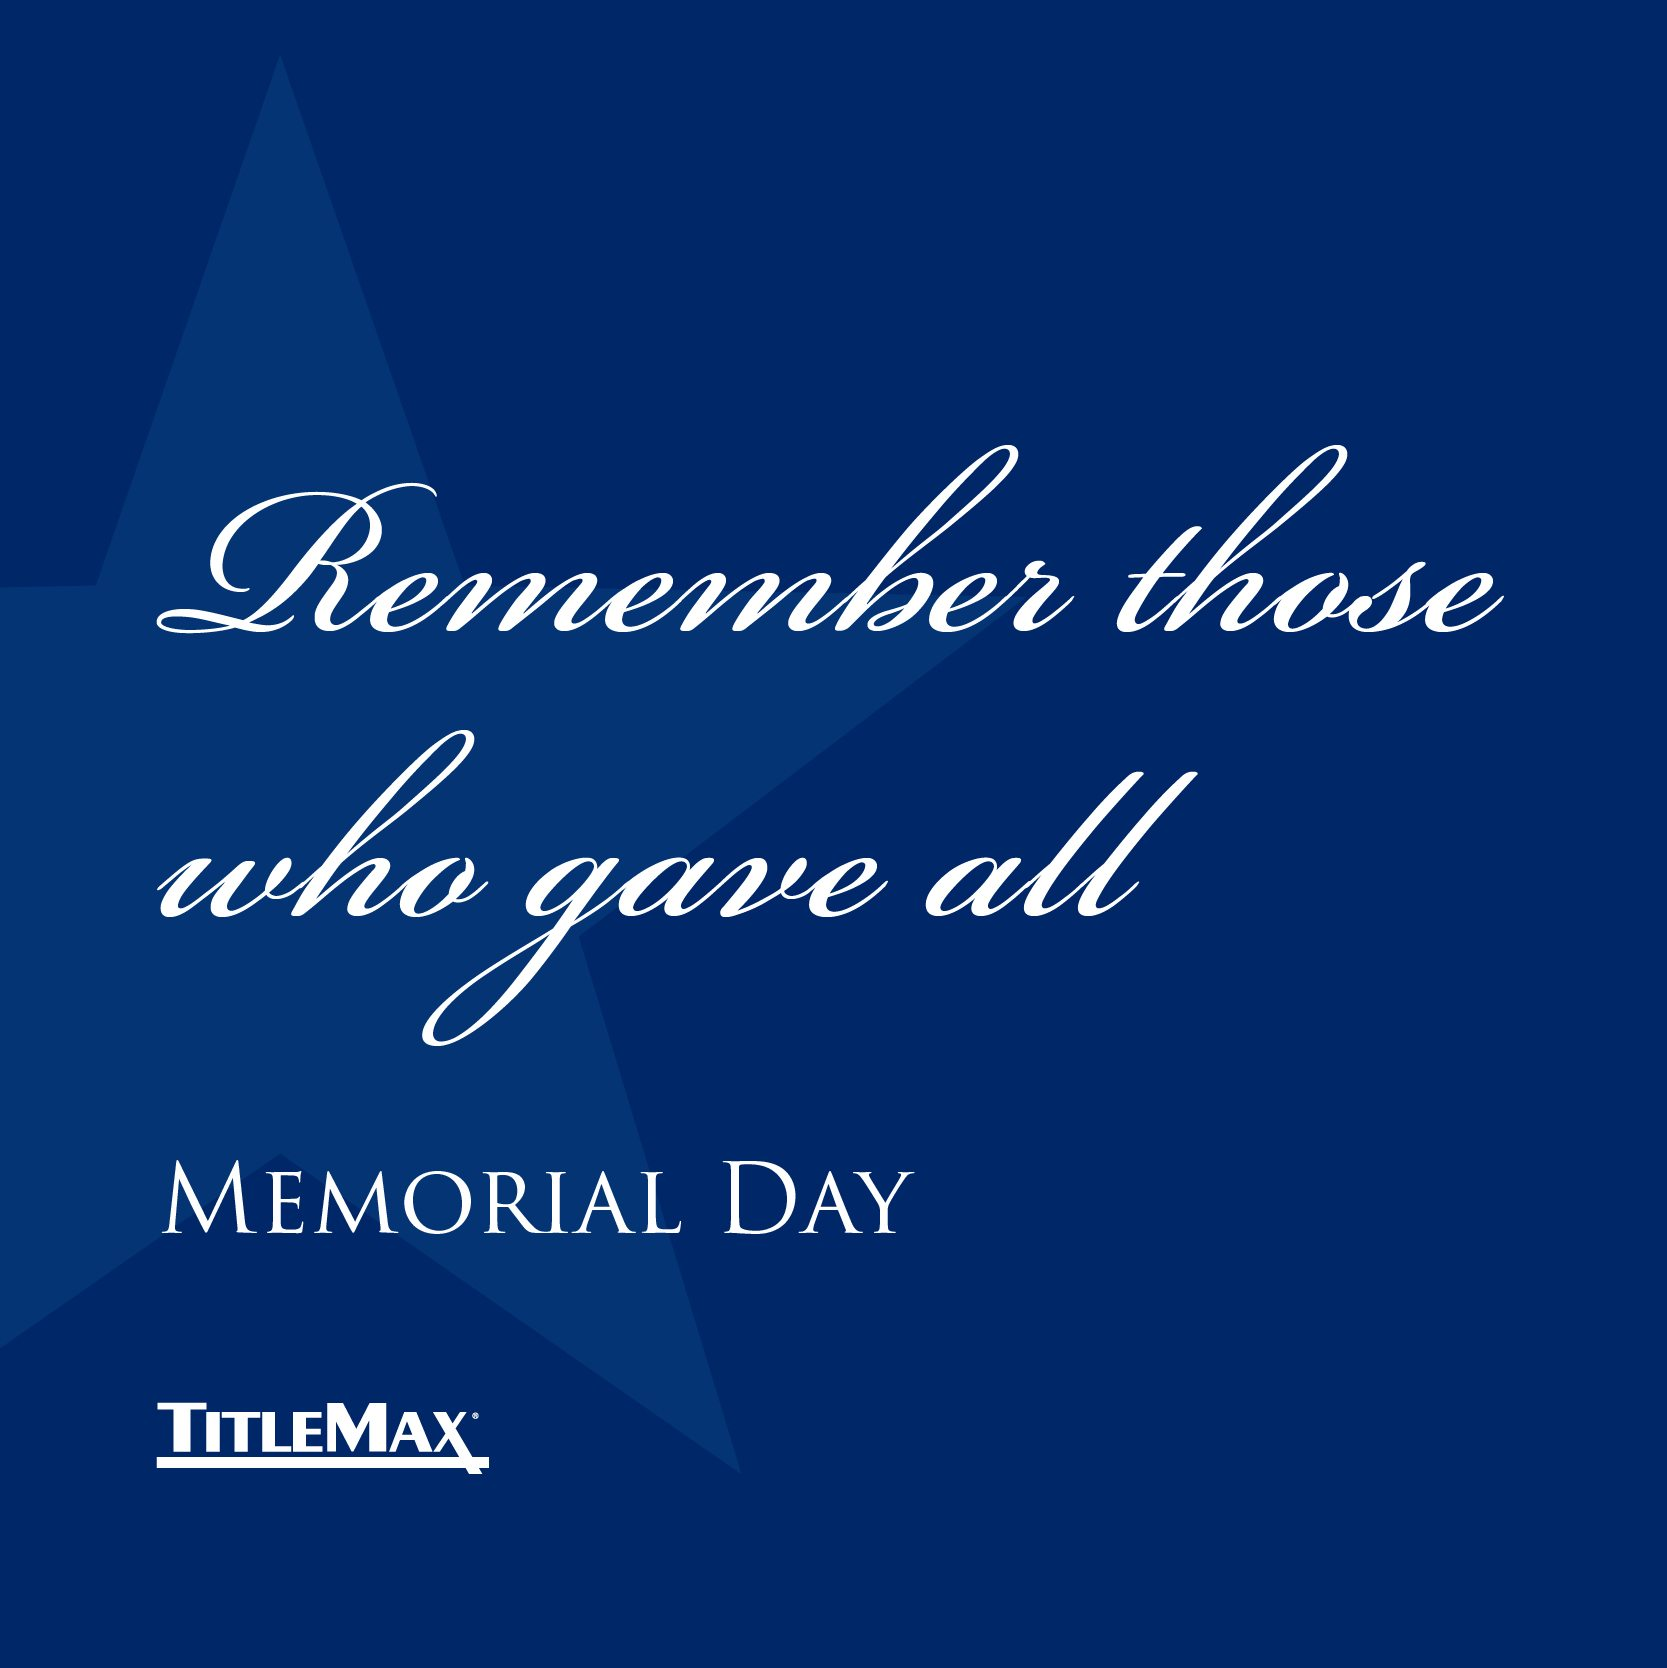 Memorial Day is a Time to Remember